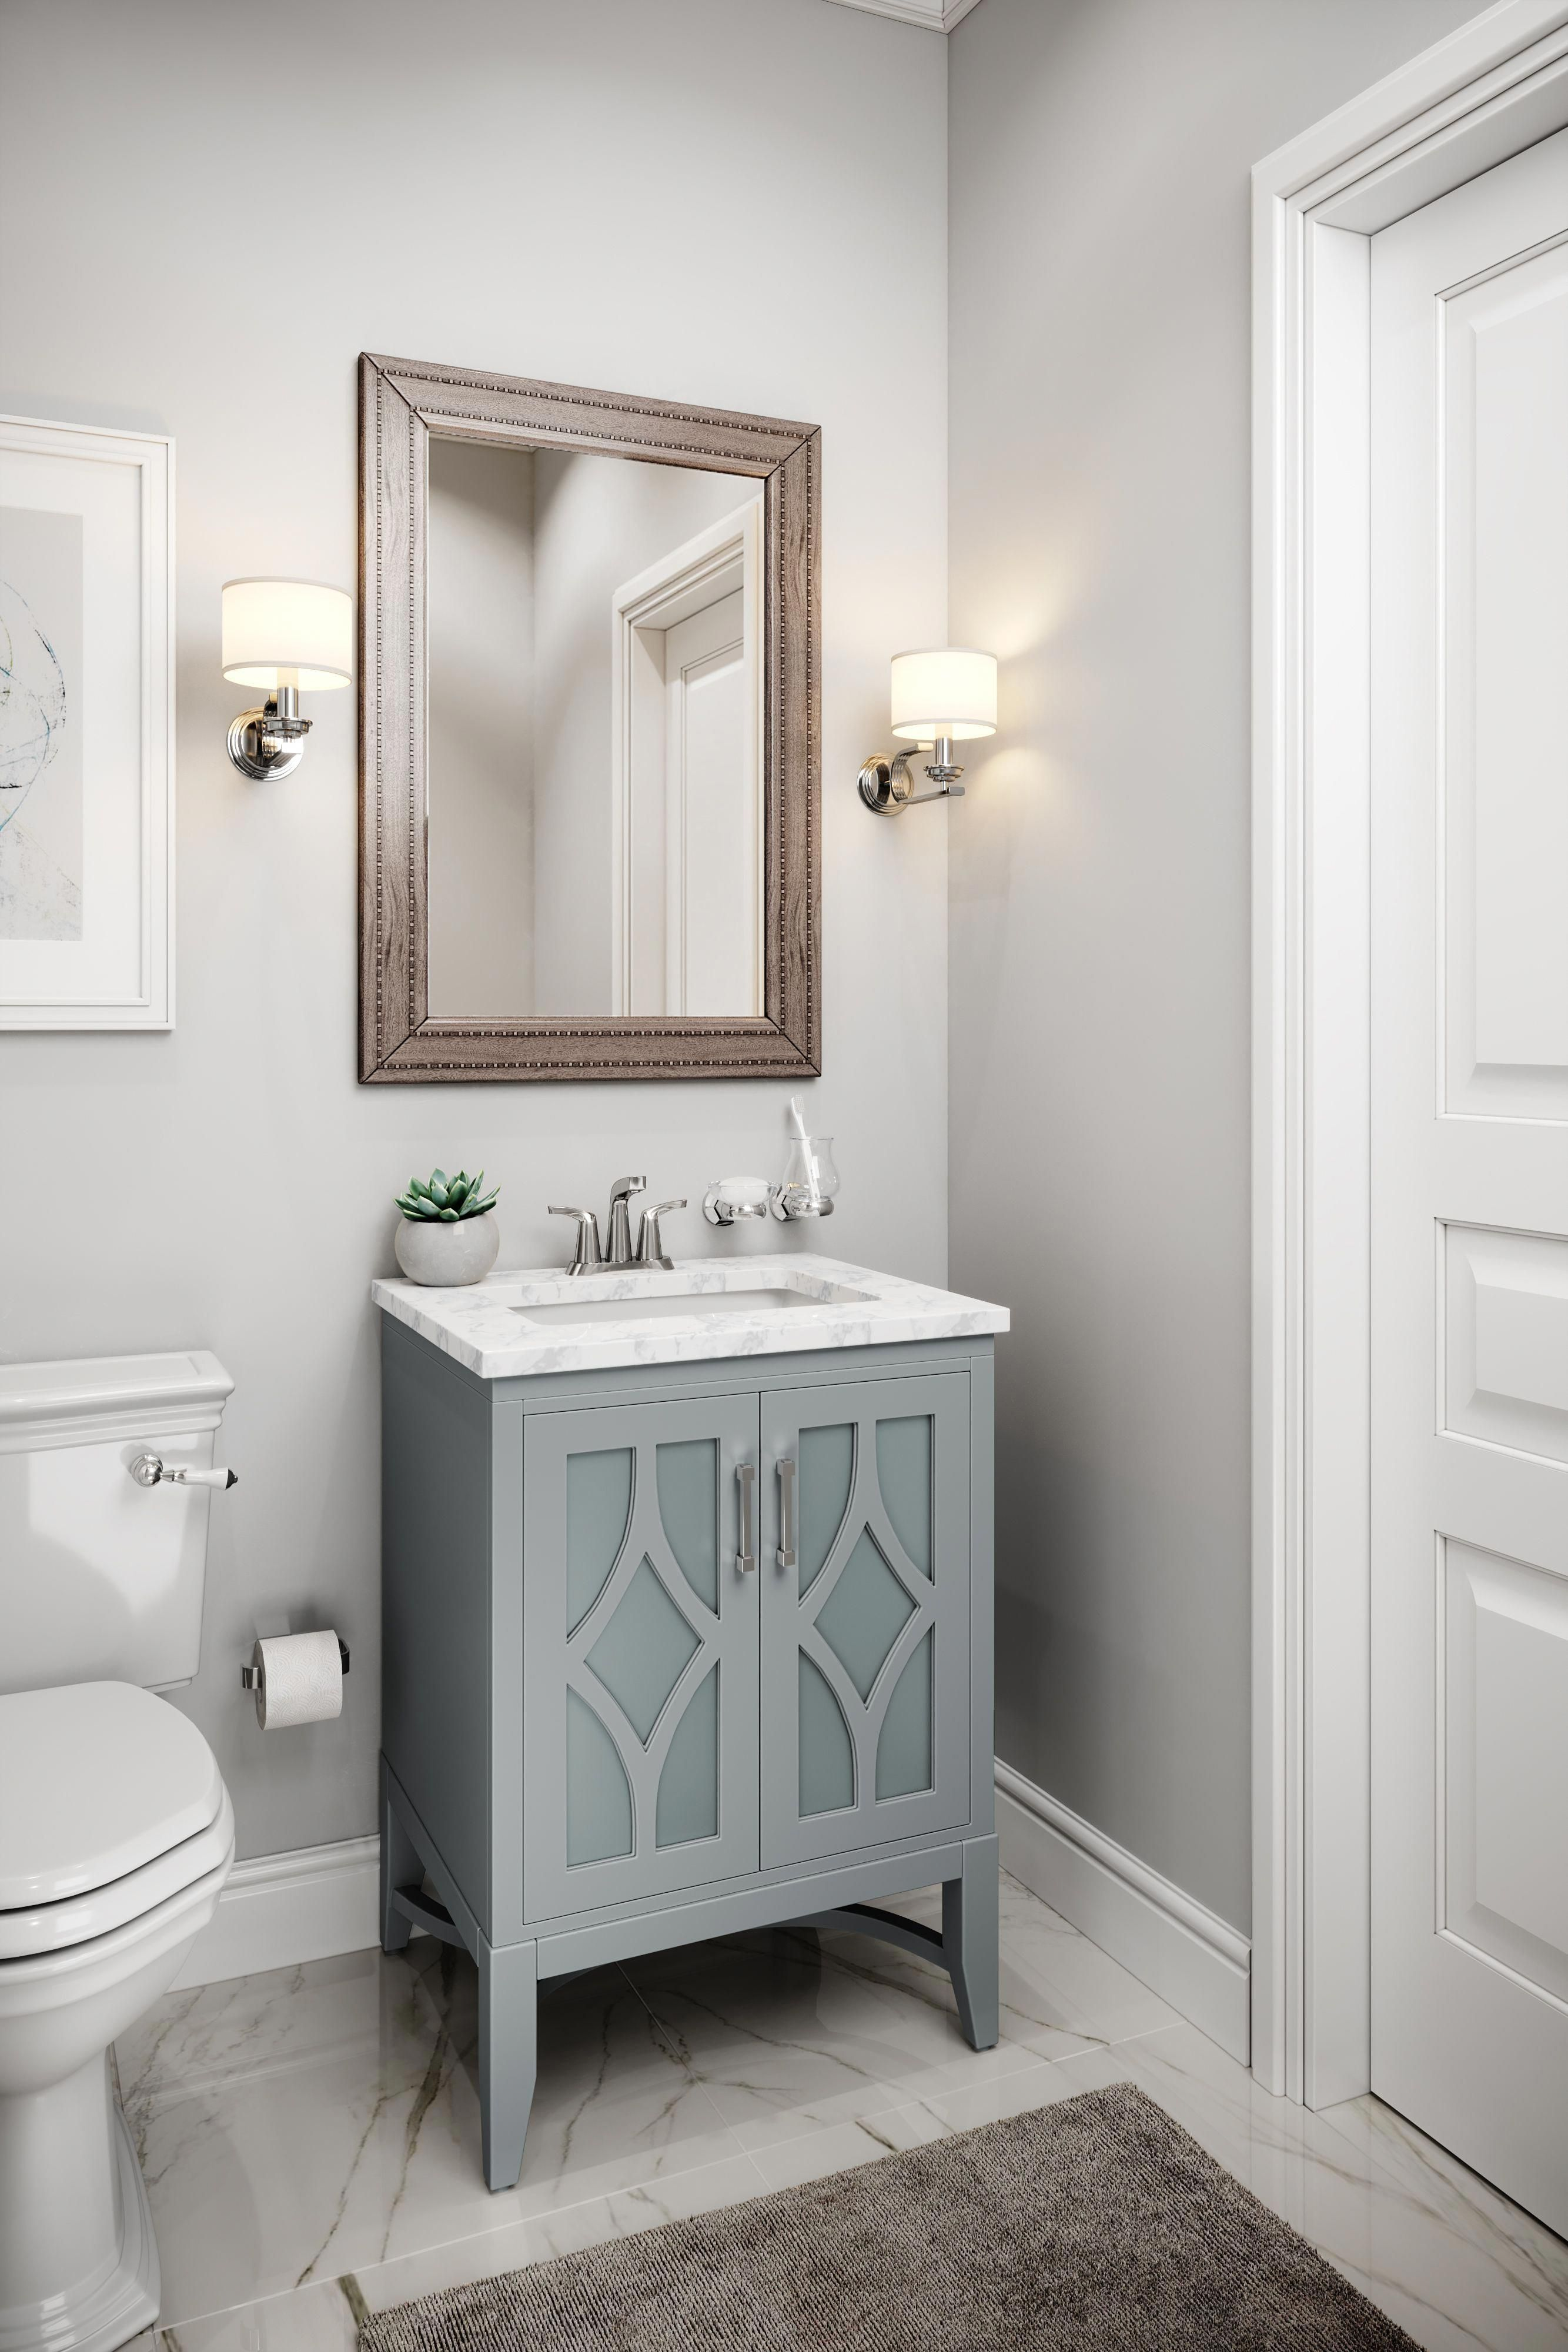 You are seeking that perfect bath vanity to fit into your ...